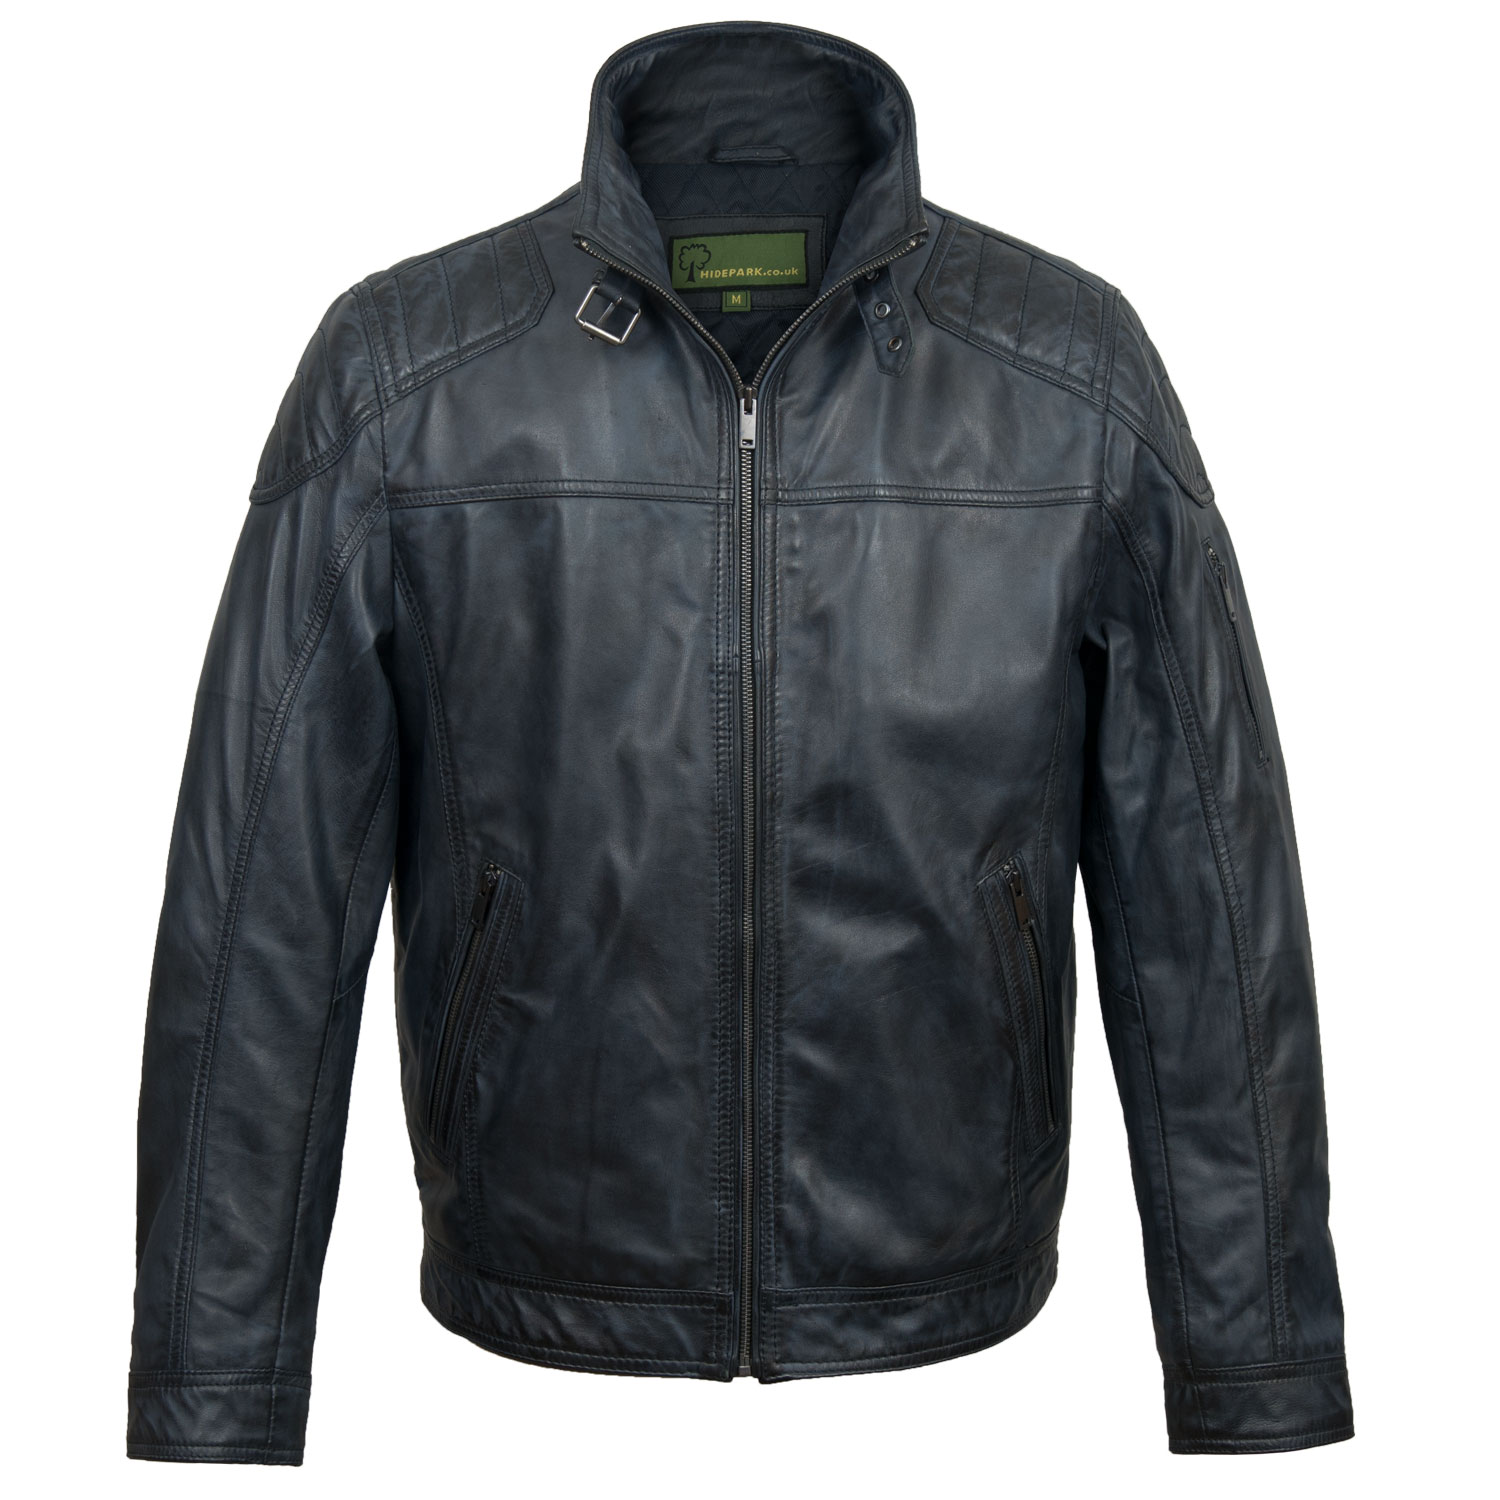 Men's Leather Biker Jackets